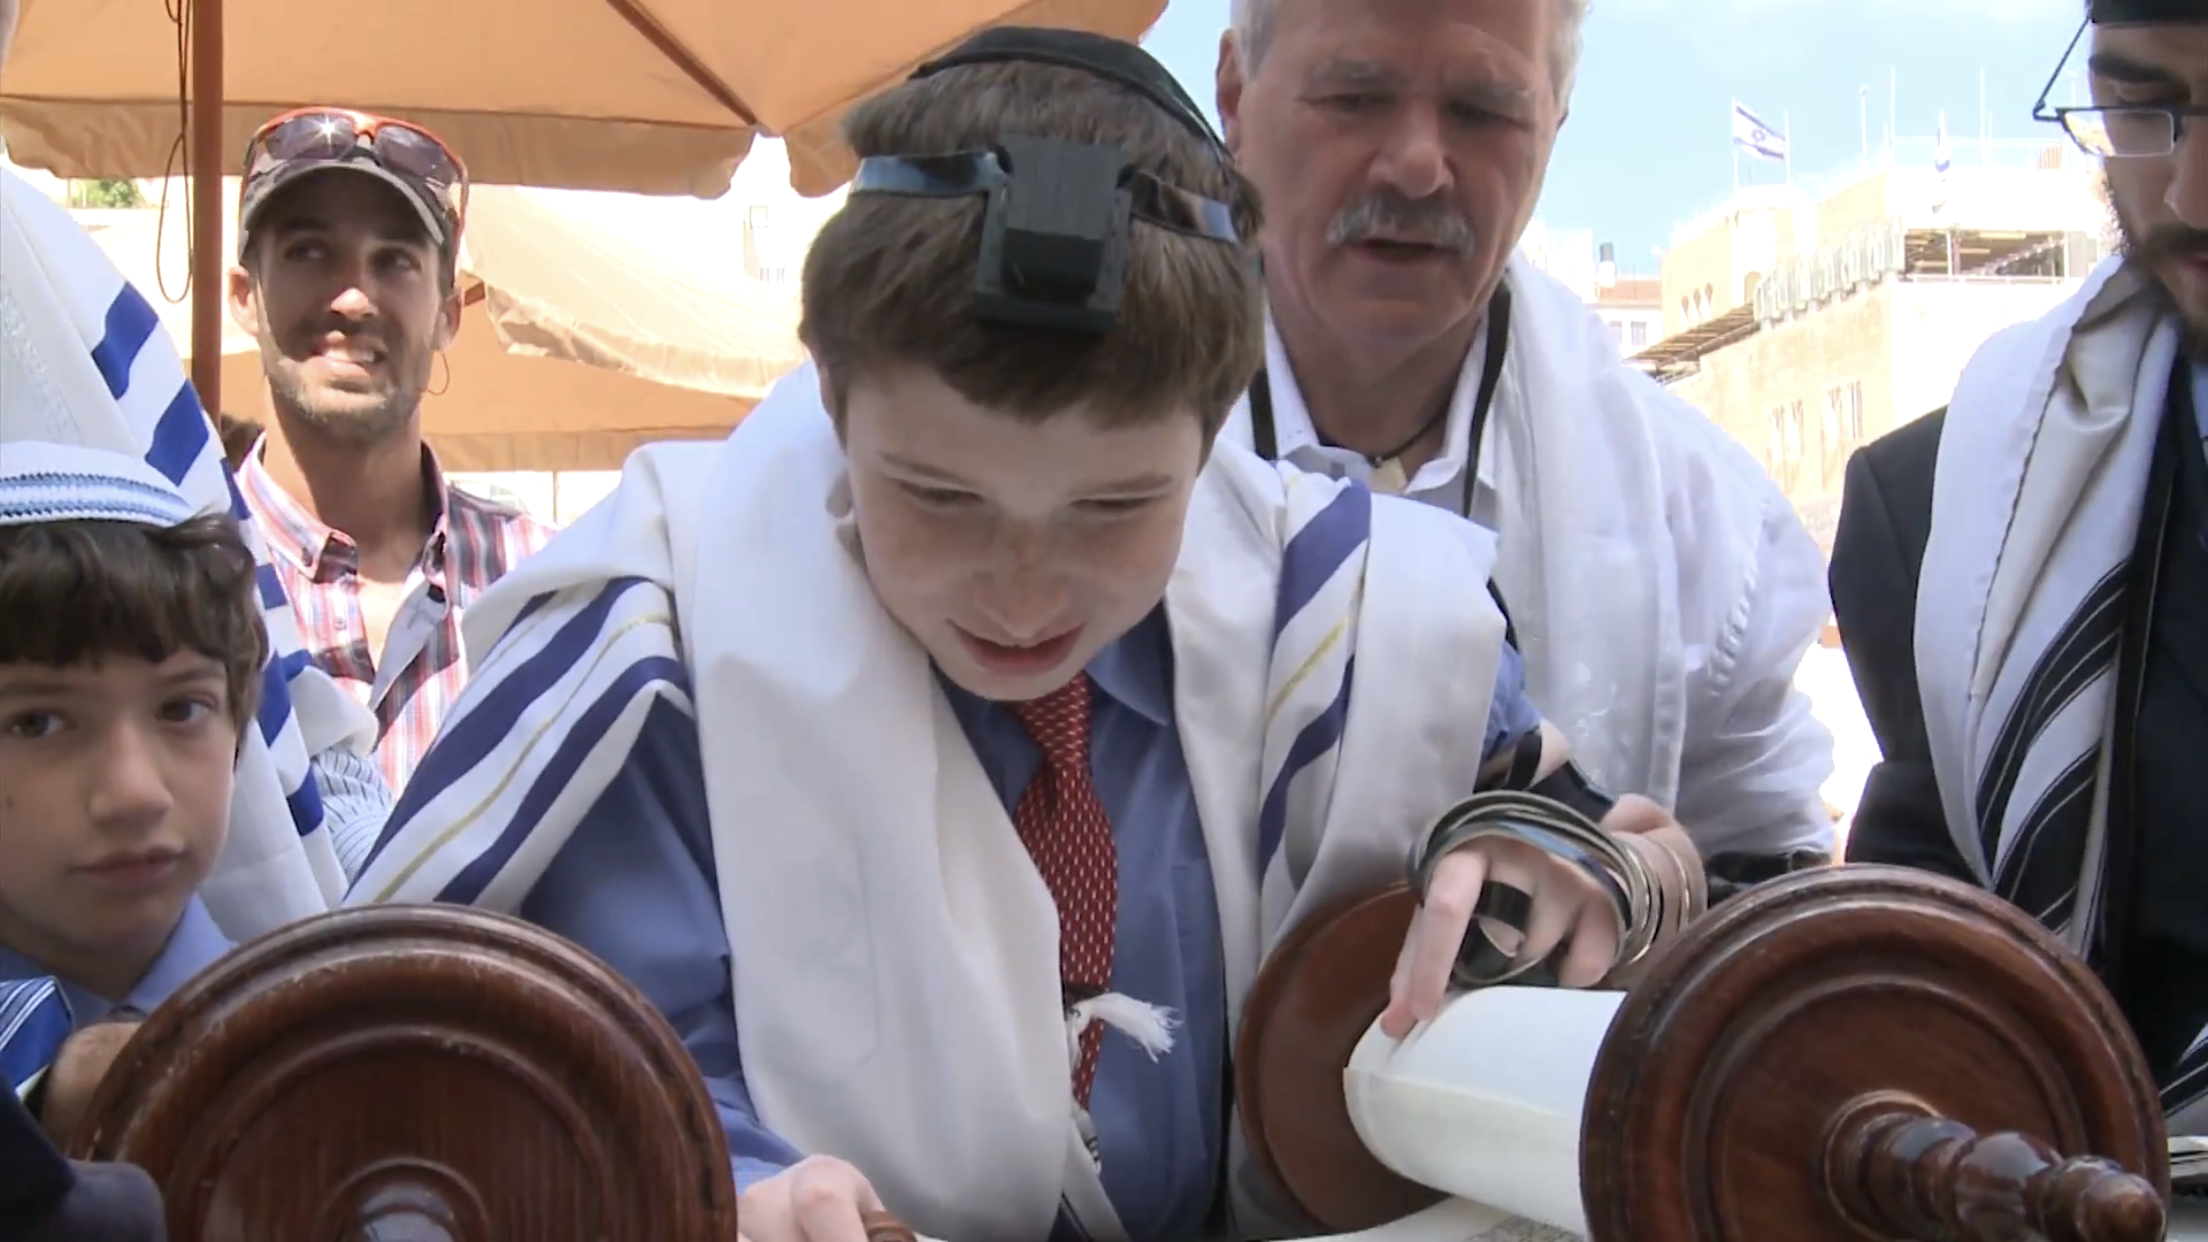 Jacob Bar Mitzvah Kotel